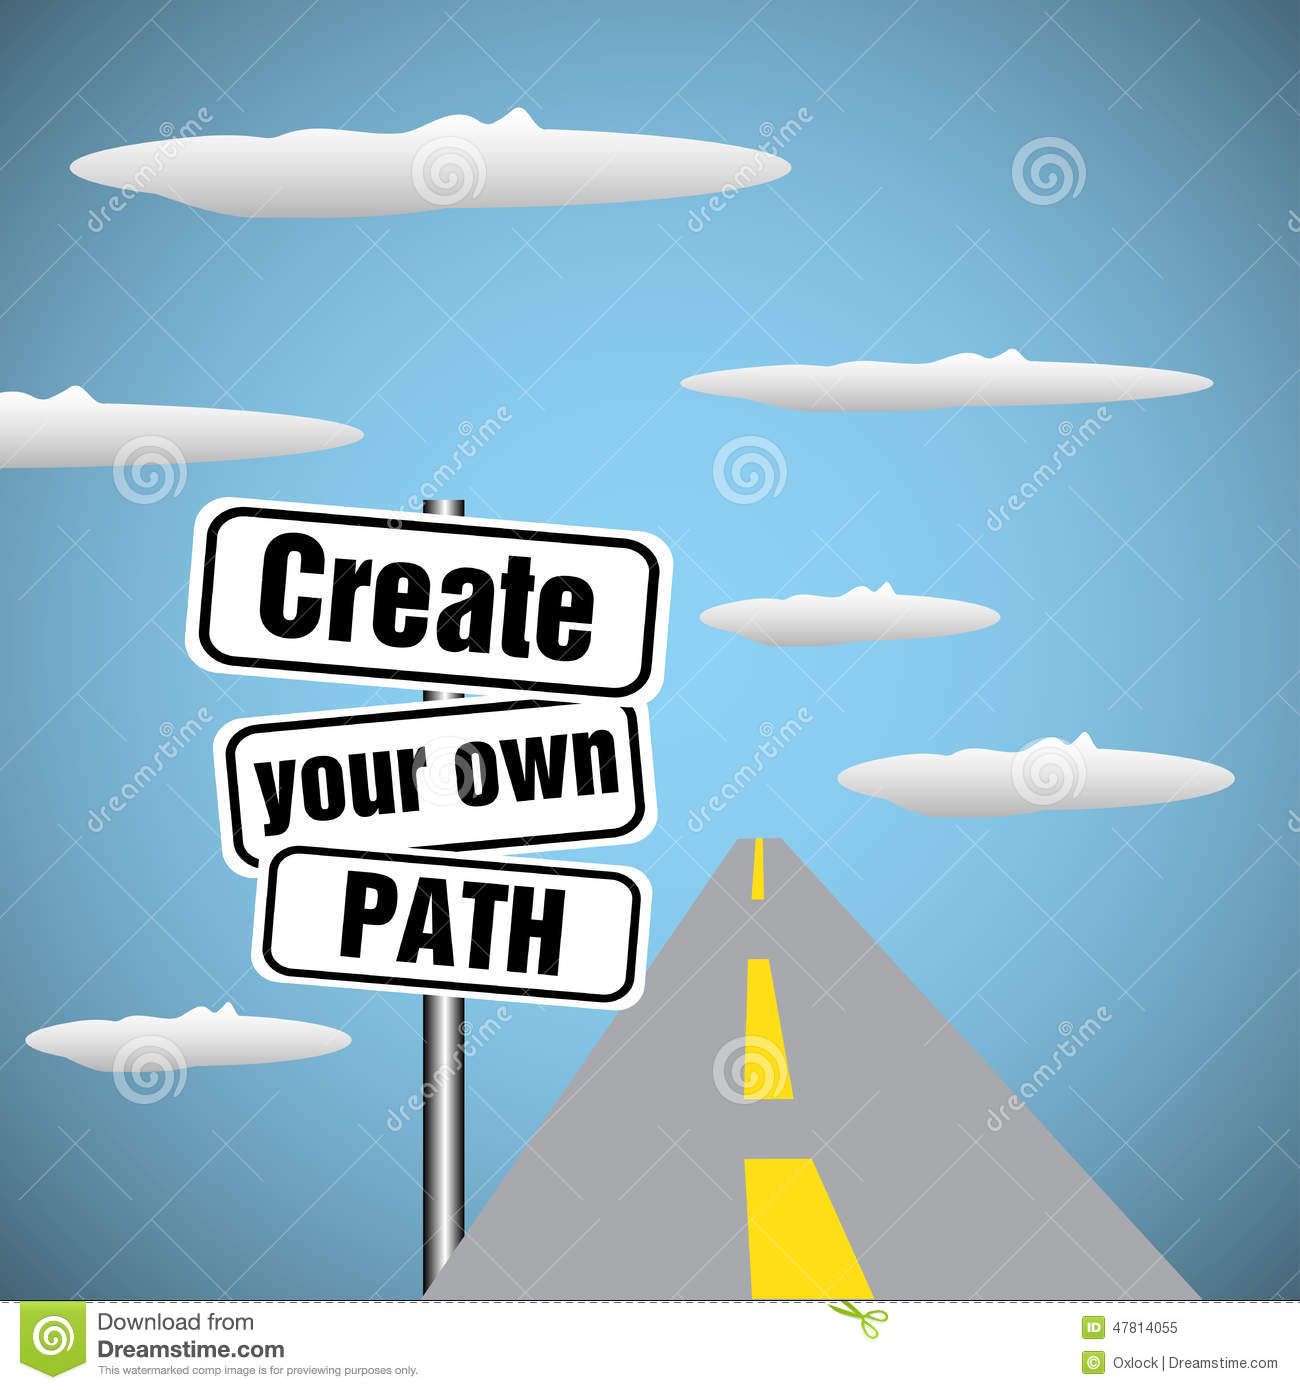 Create your own path stock vector illustration of for Create your own